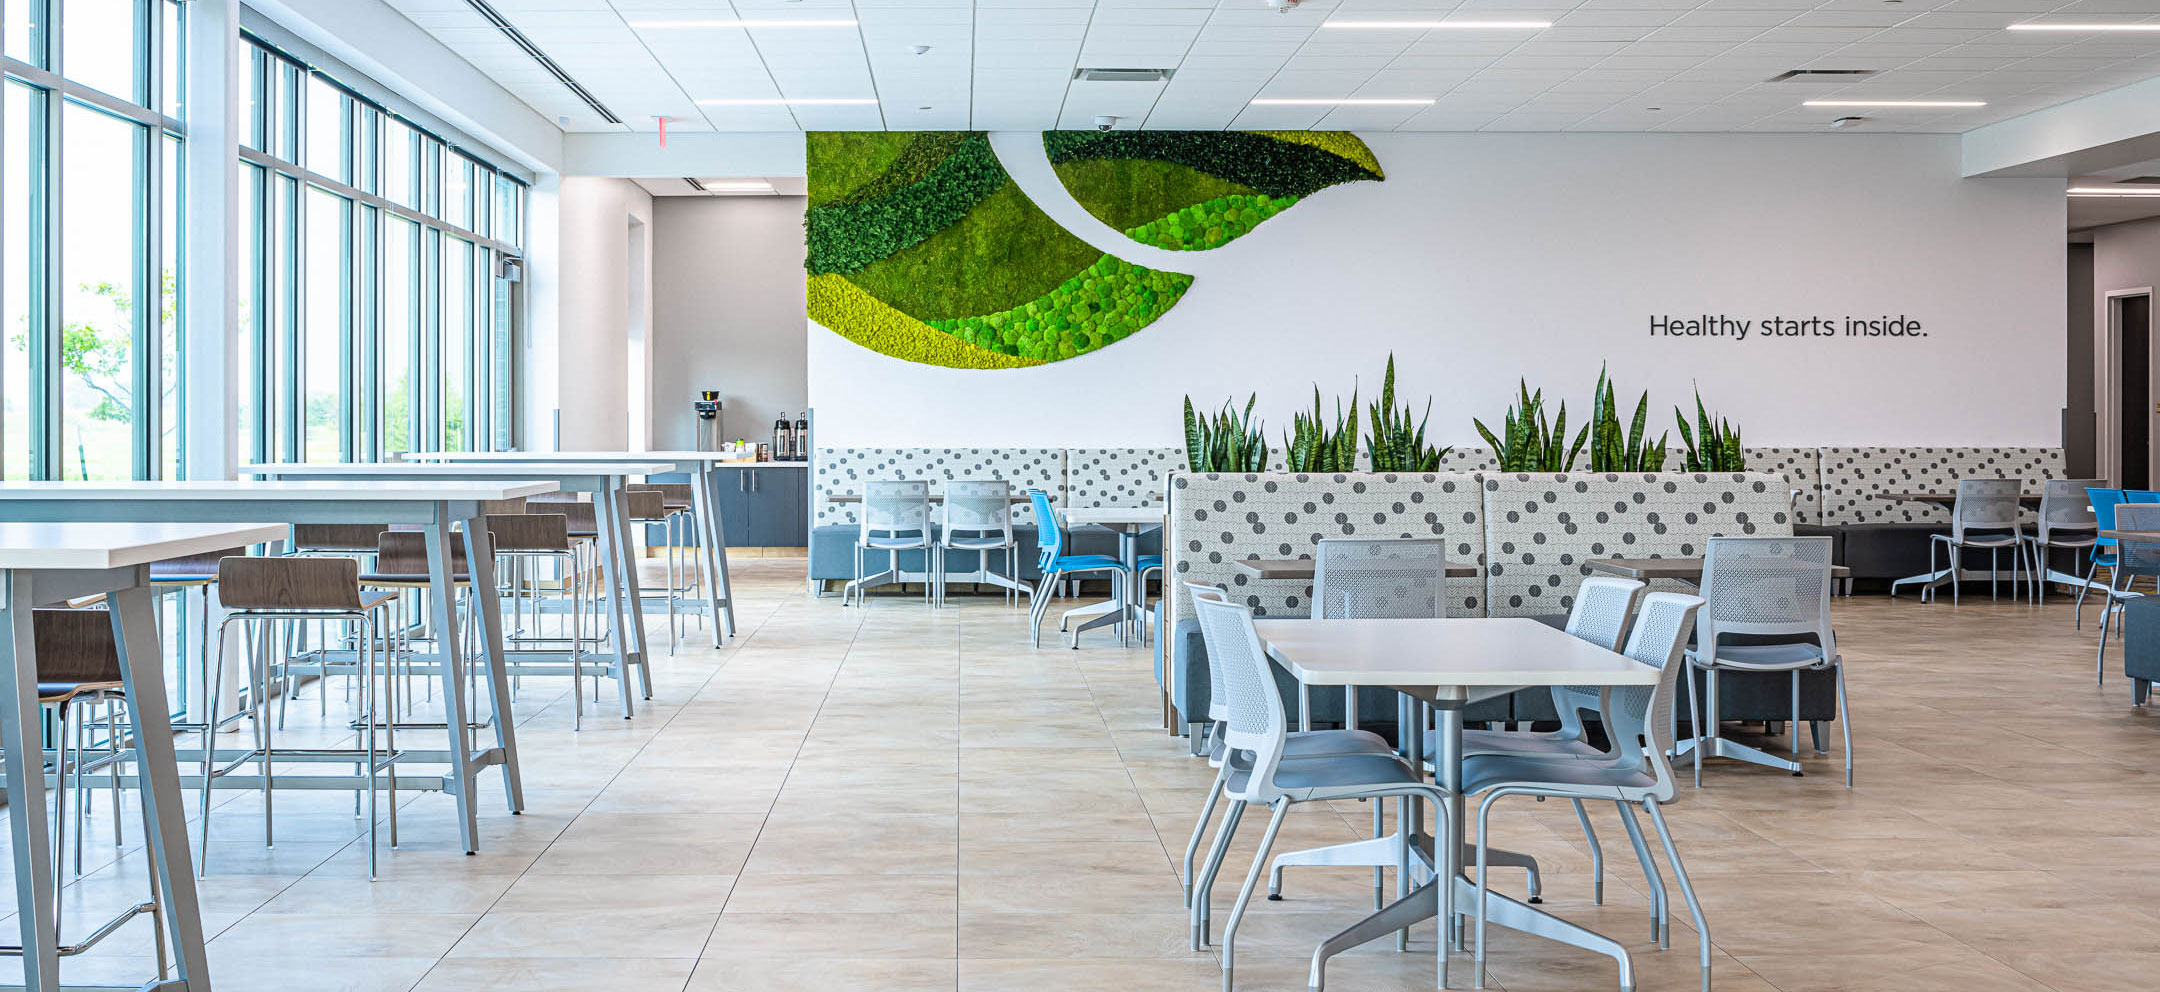 Cafe Lunch area of Nature's Way new corporate office facility constructed by C.D. Smith Construction firm